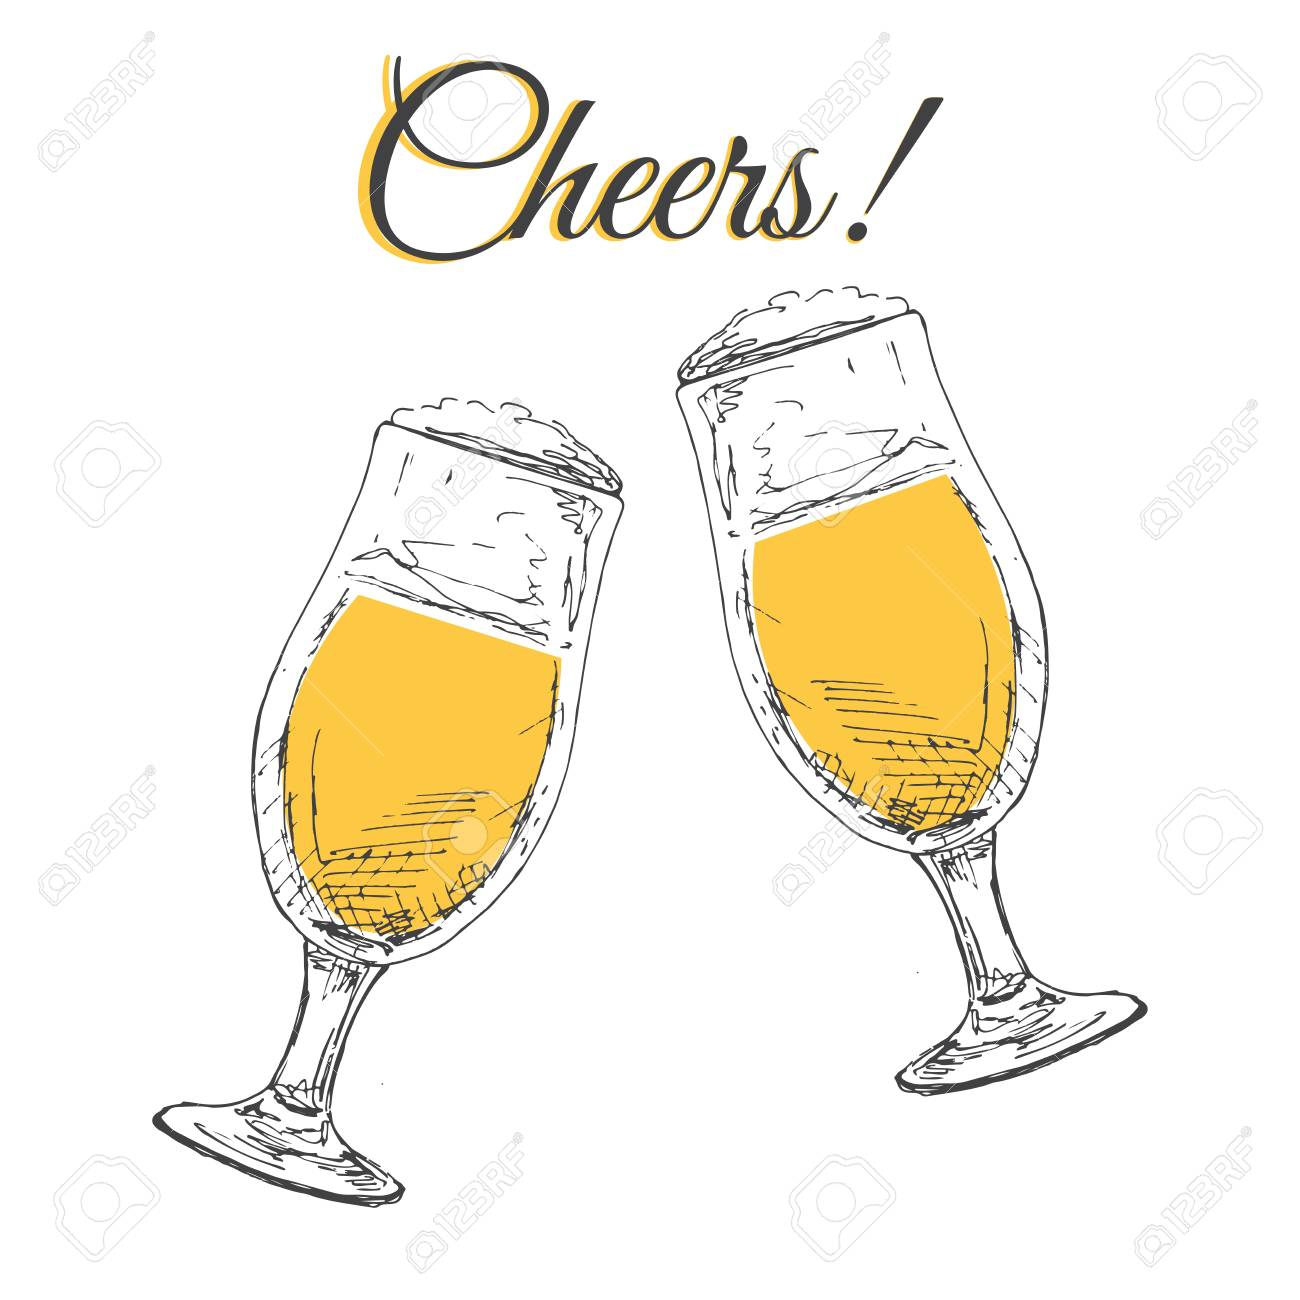 27bdde87031 Two glasses with beer on a white background. Inscription Cheers Vector  illustration in sketch style